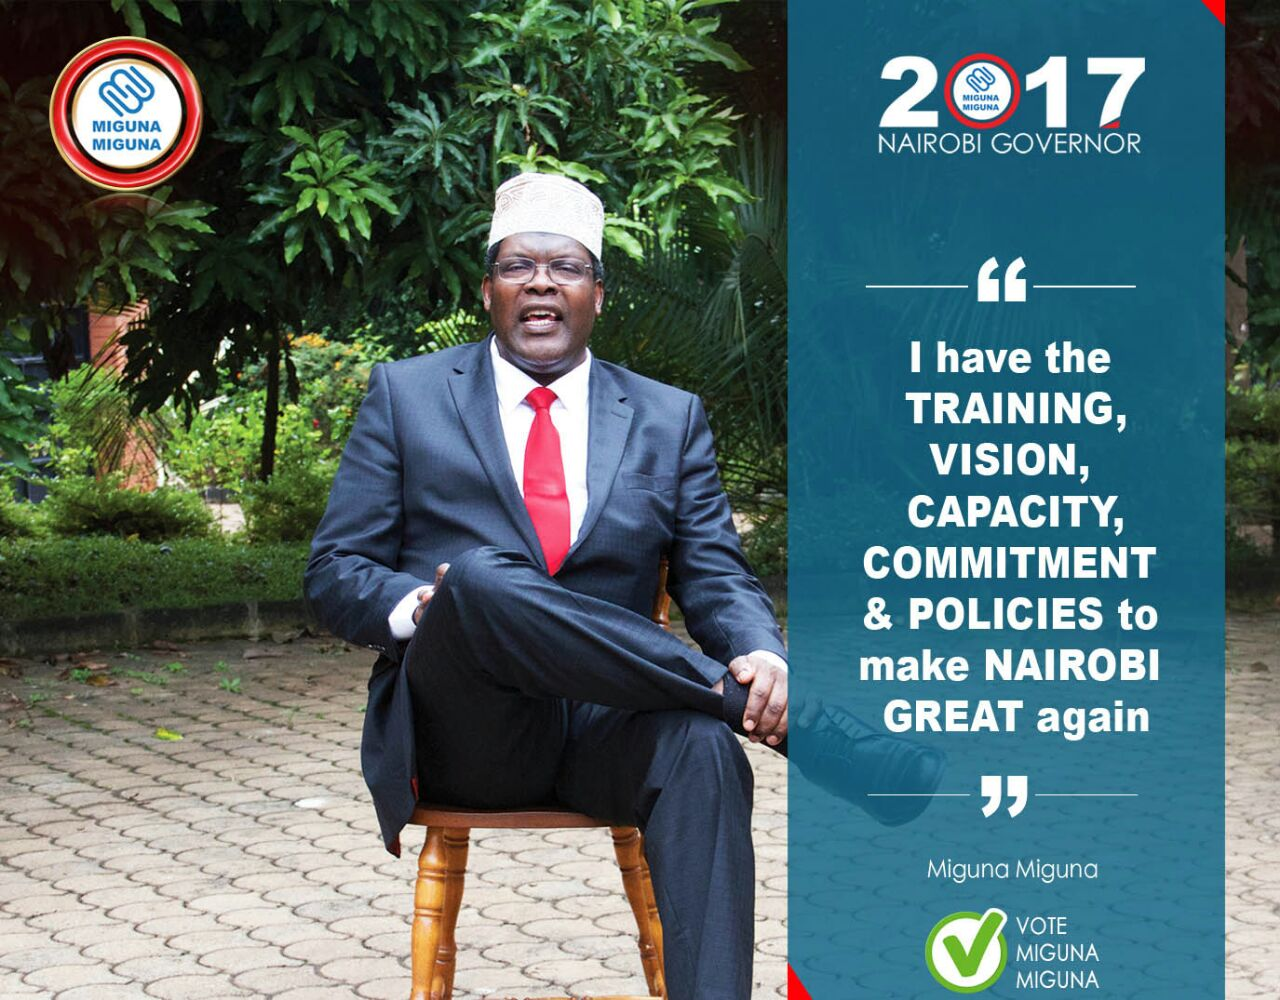 The Candidate has the vision, training, capacity.